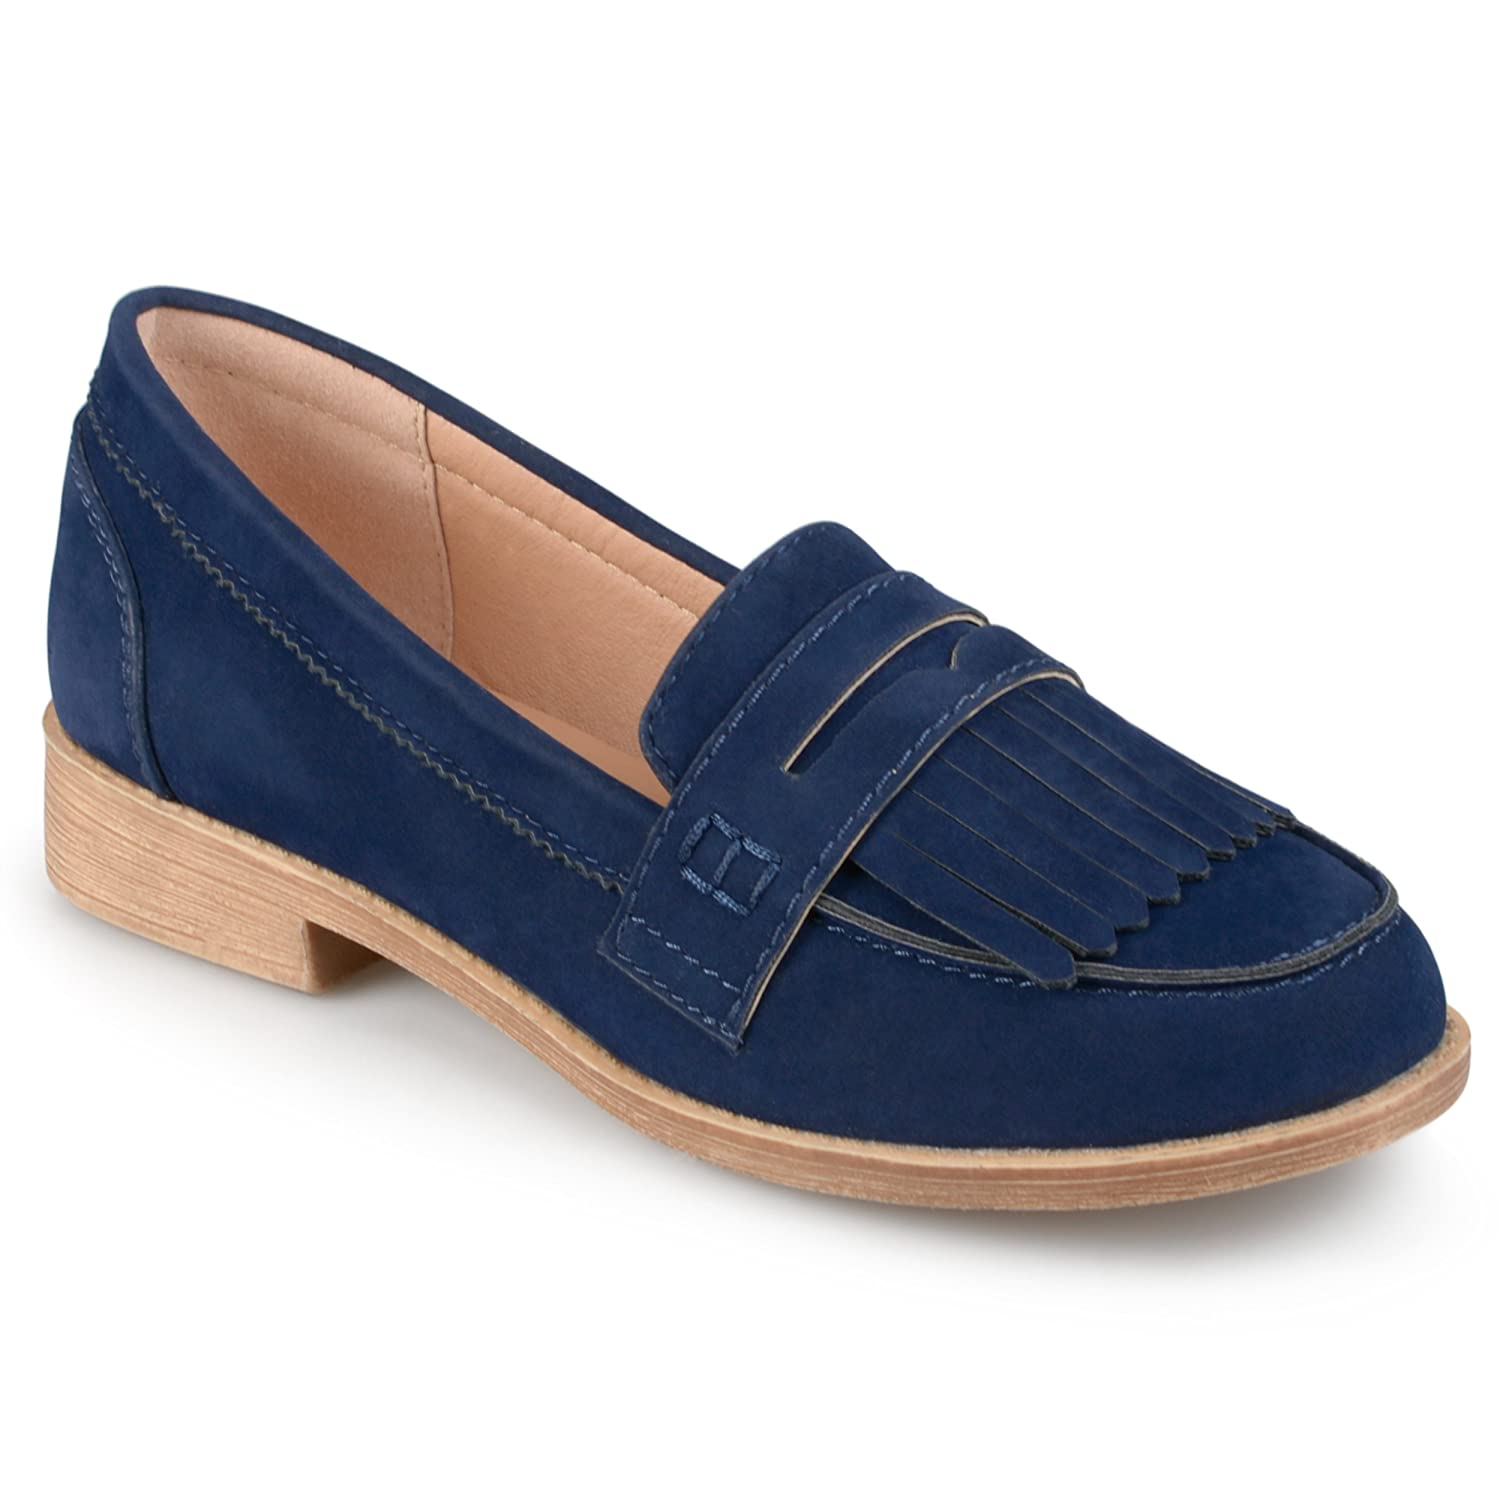 Journee Collection Womens Faux Suede Fringed Loafers